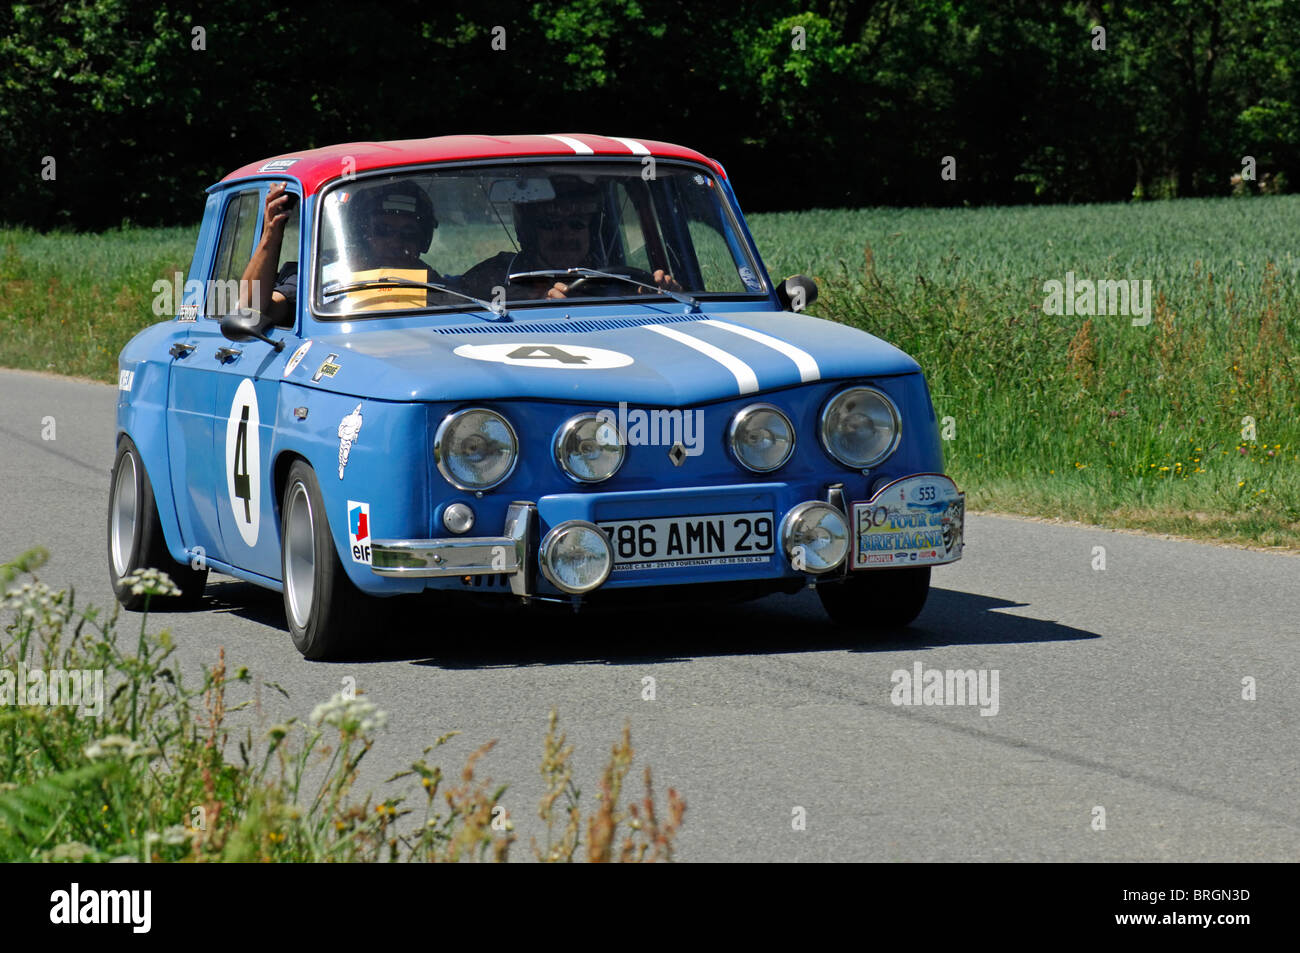 renault r8 gordini 1965 in the tour de bretagne classic car rally stock photo 31715249 alamy. Black Bedroom Furniture Sets. Home Design Ideas